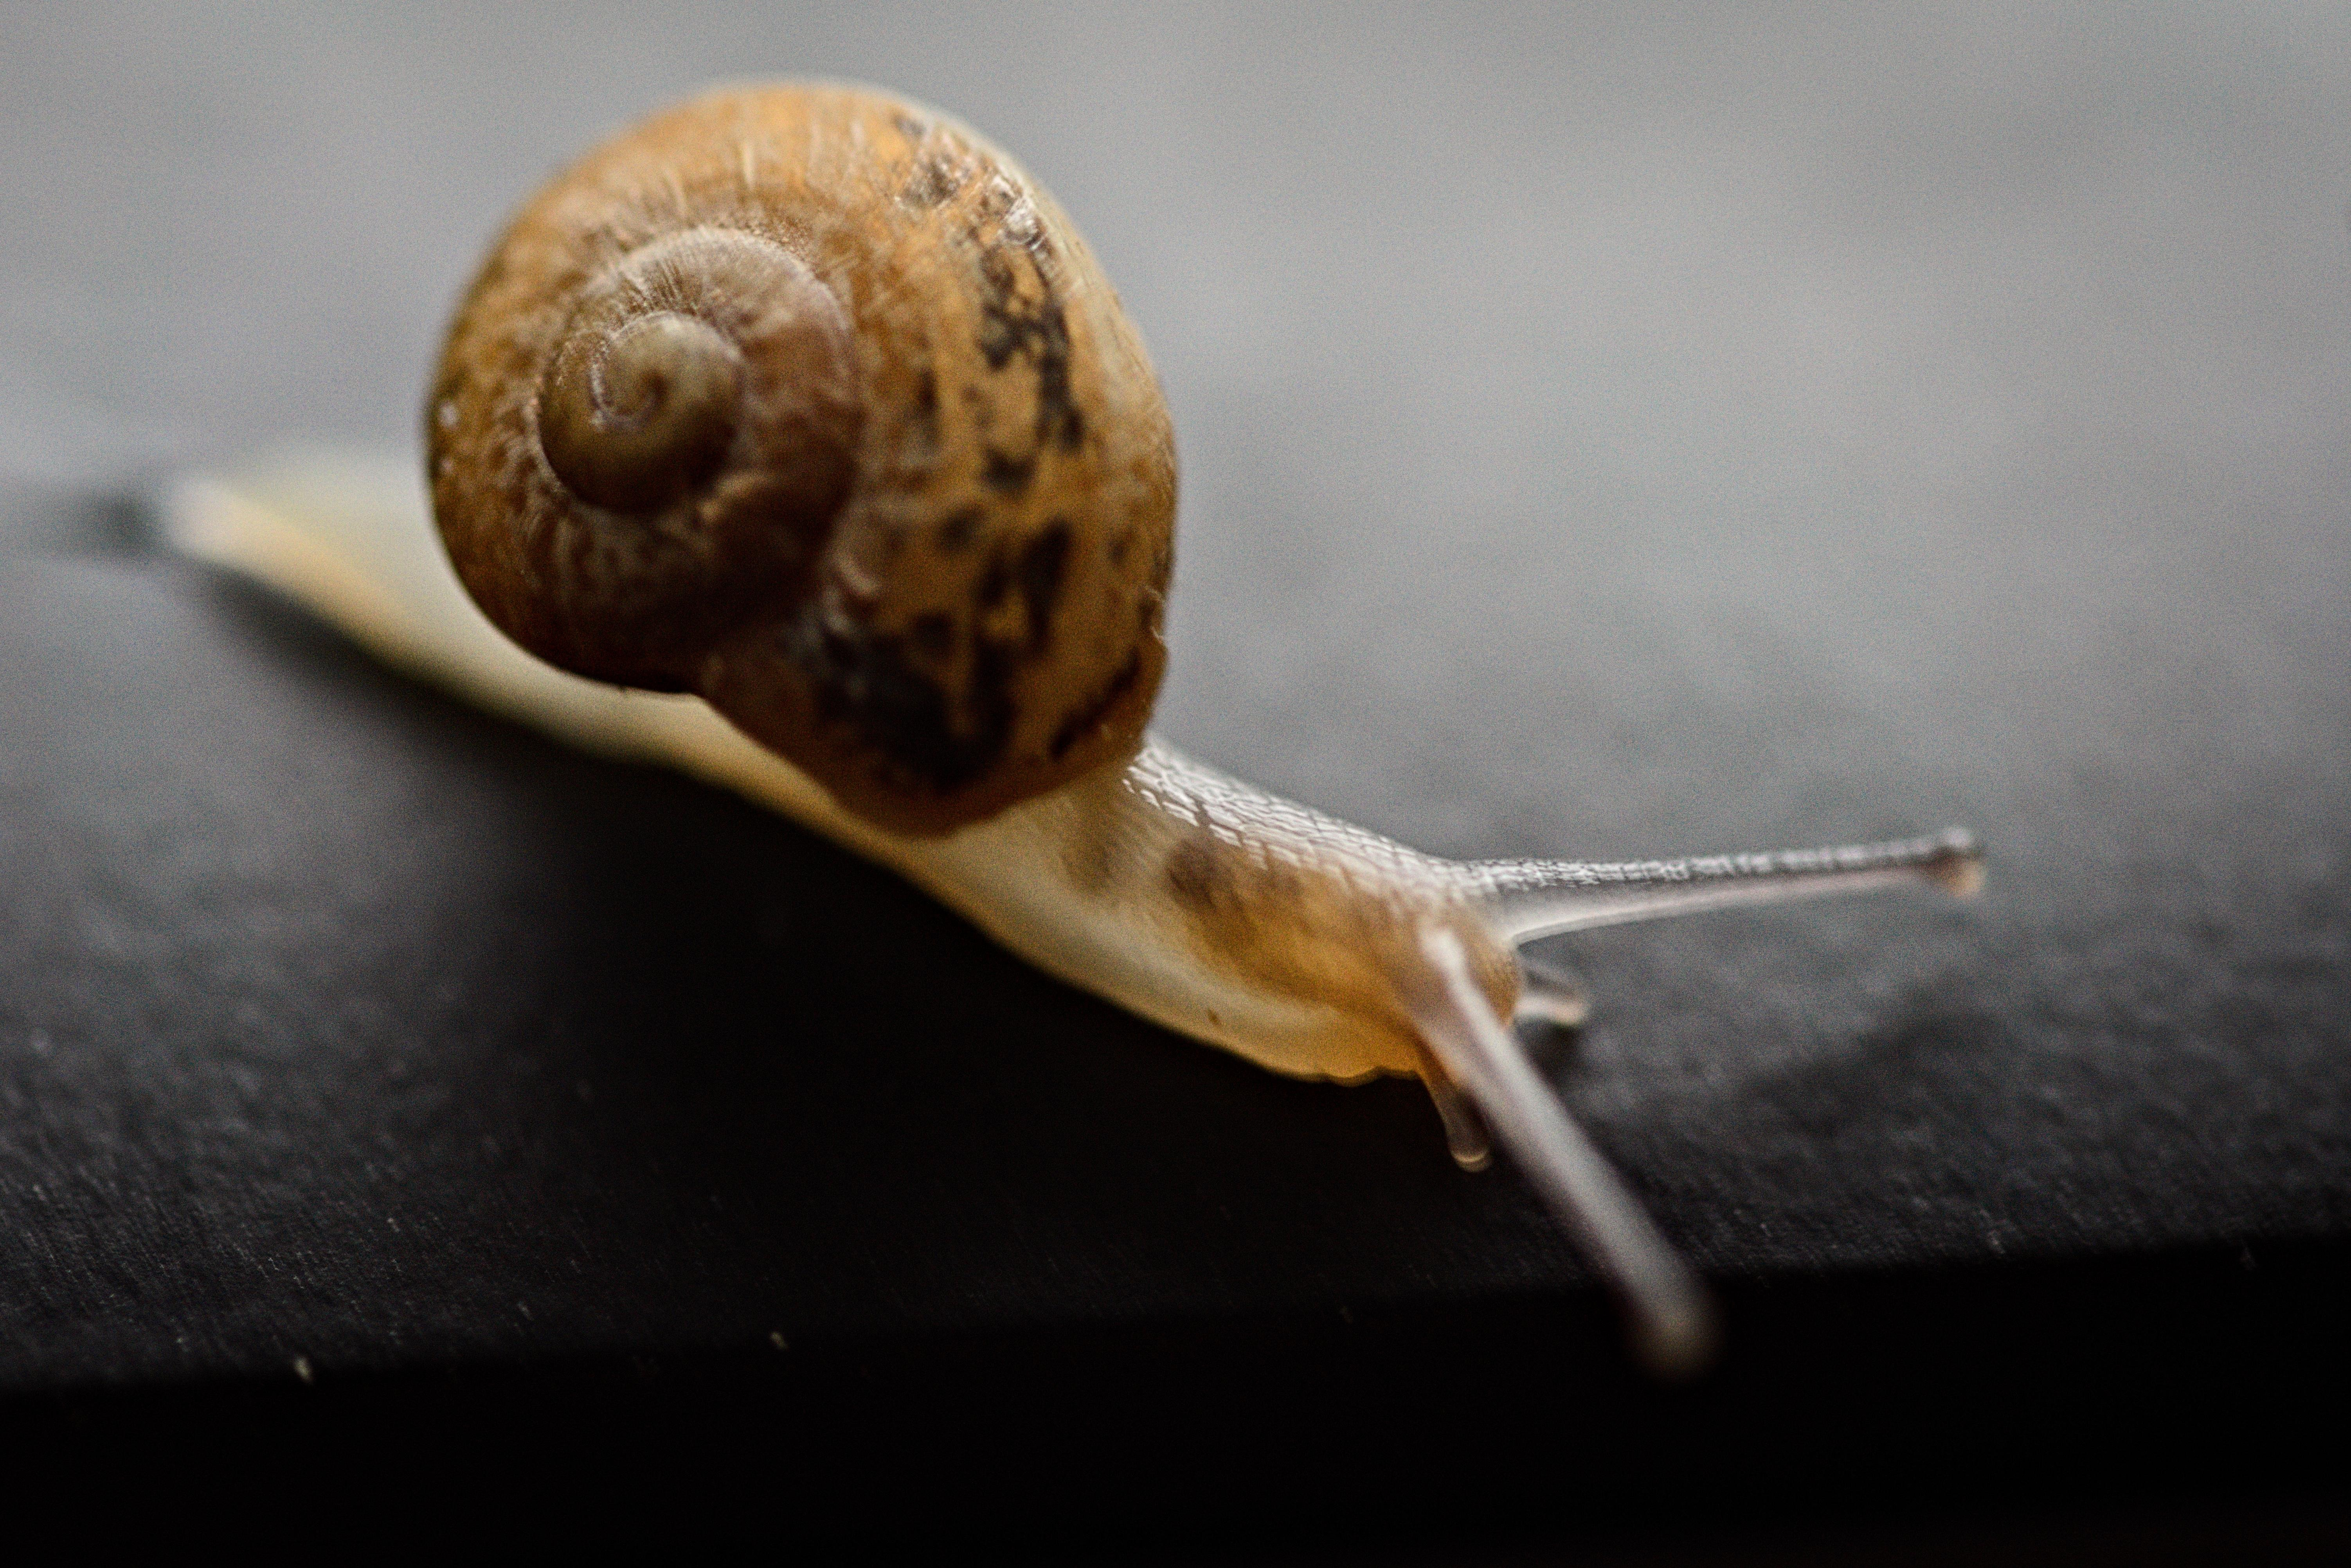 Free download high resolution image - free image free photo free stock image public domain picture -Snail Achatina on a dark background.